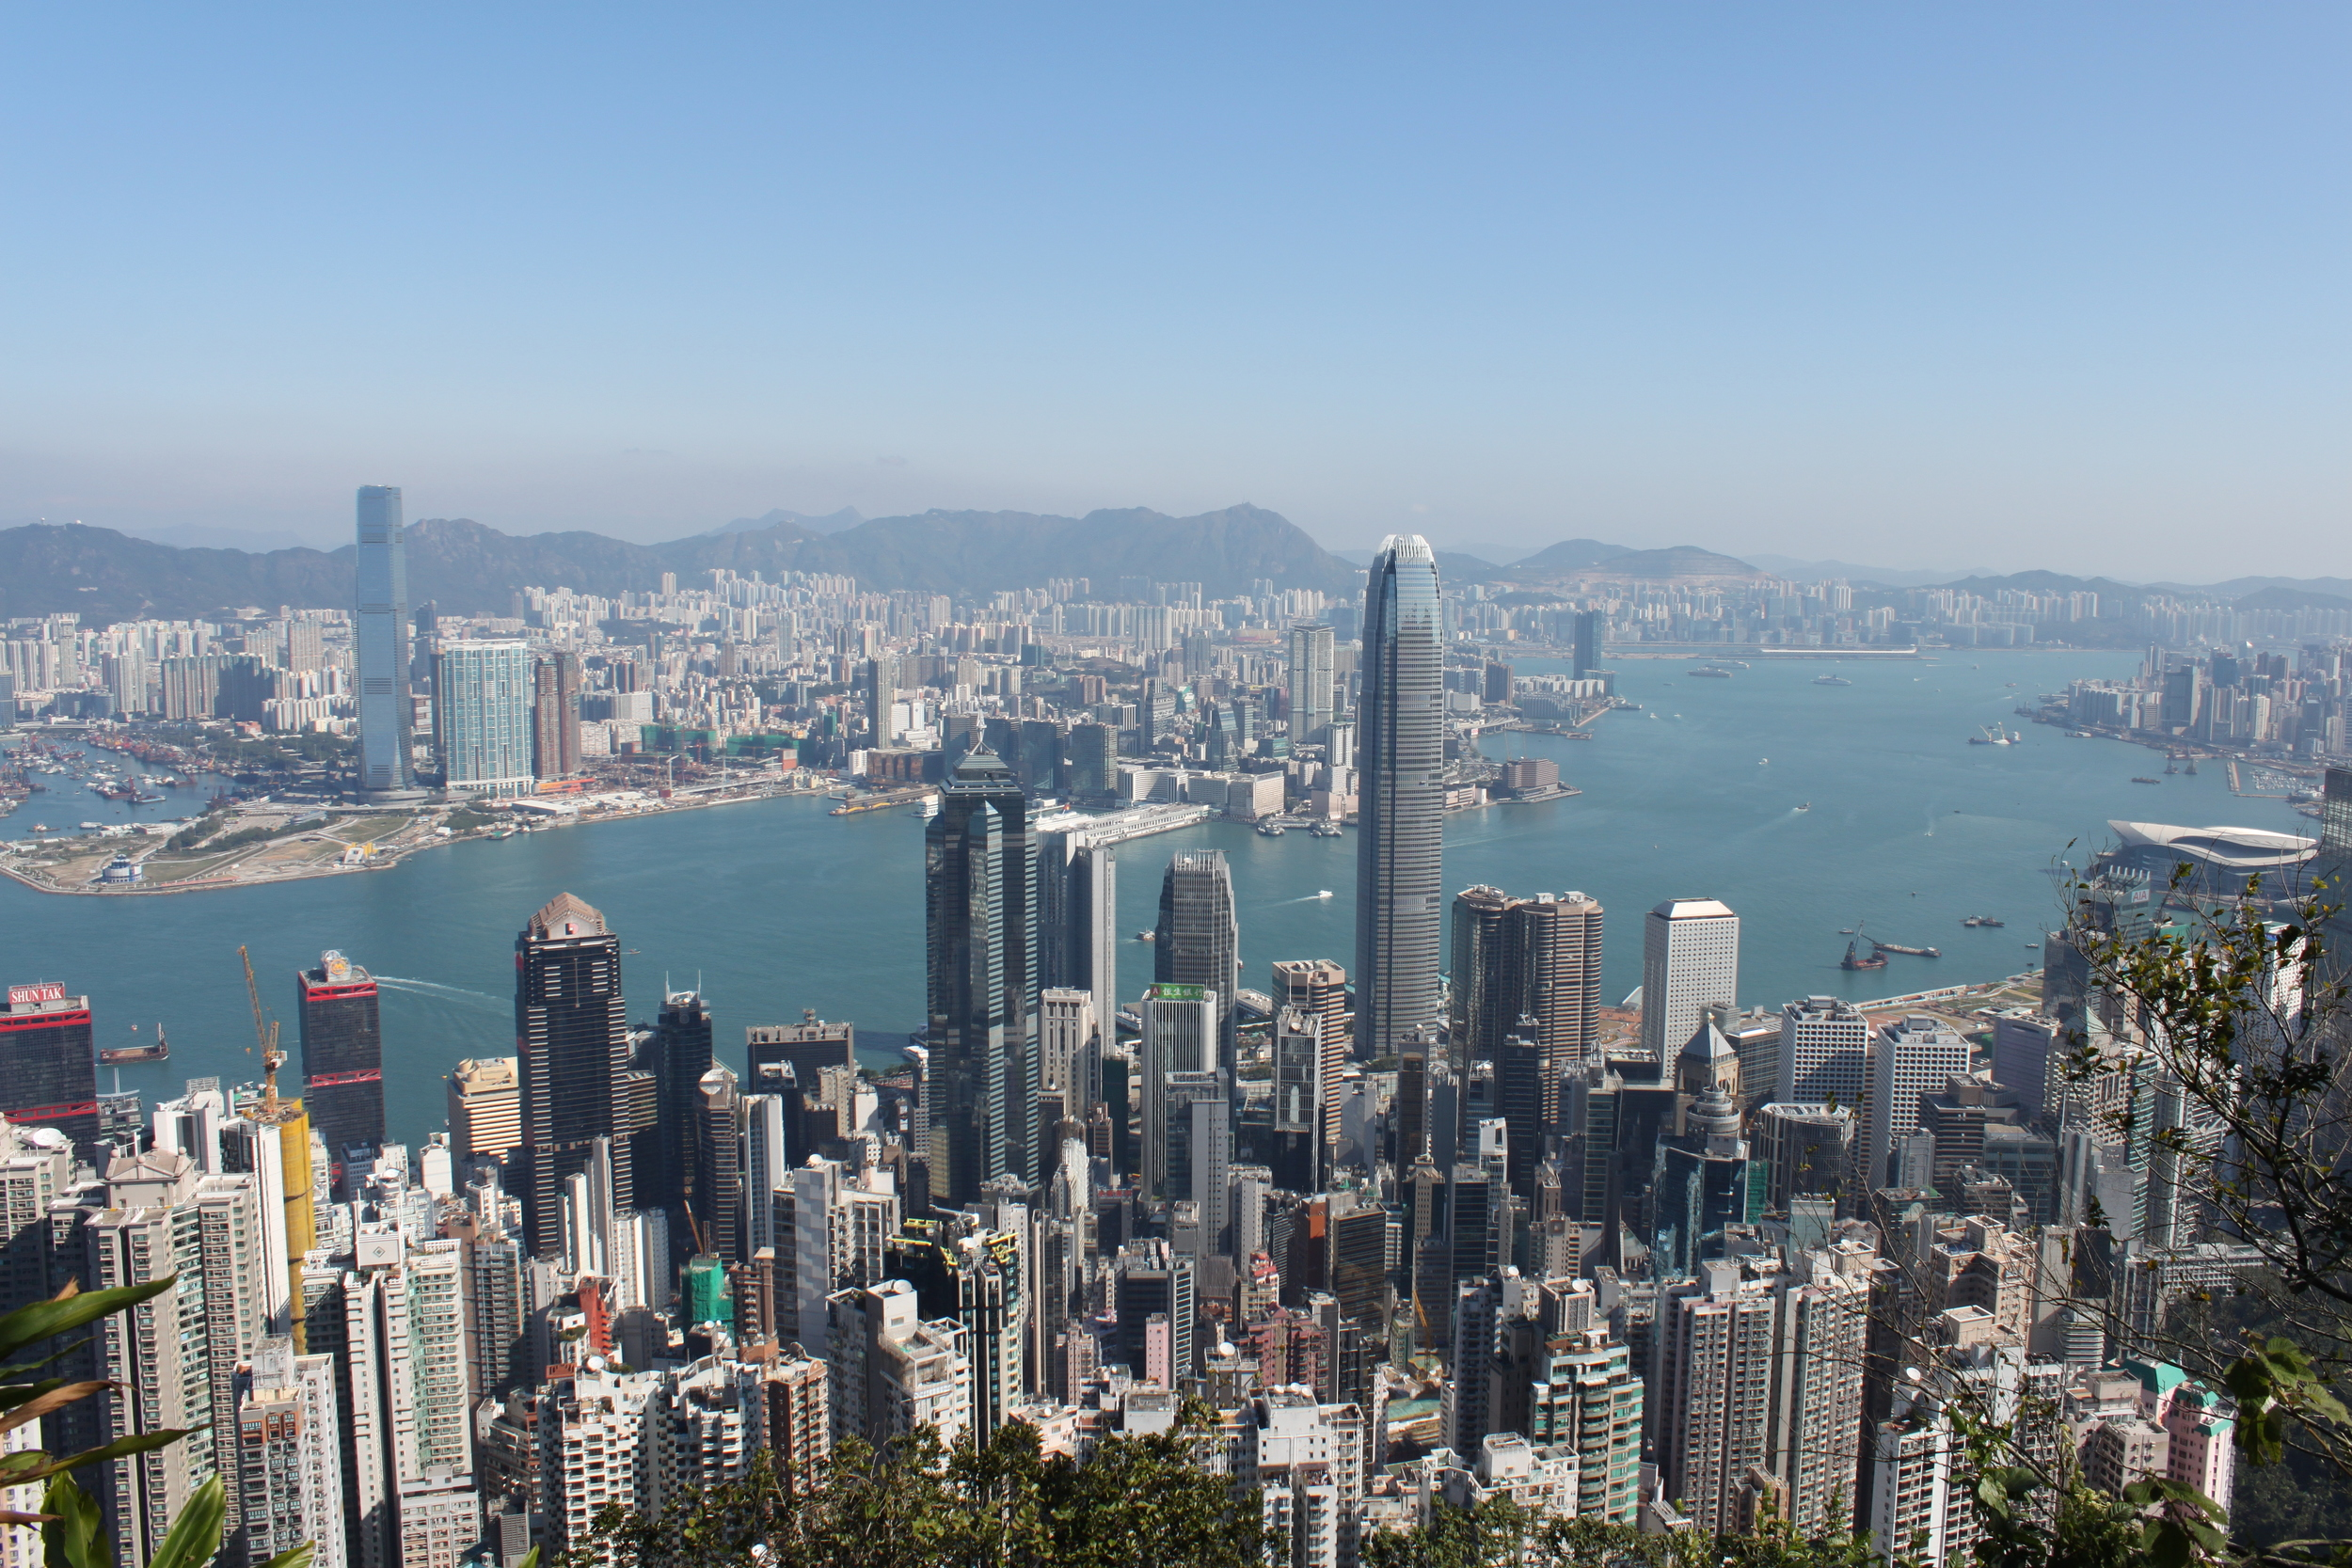 The stunning view from Victoria's Peak.